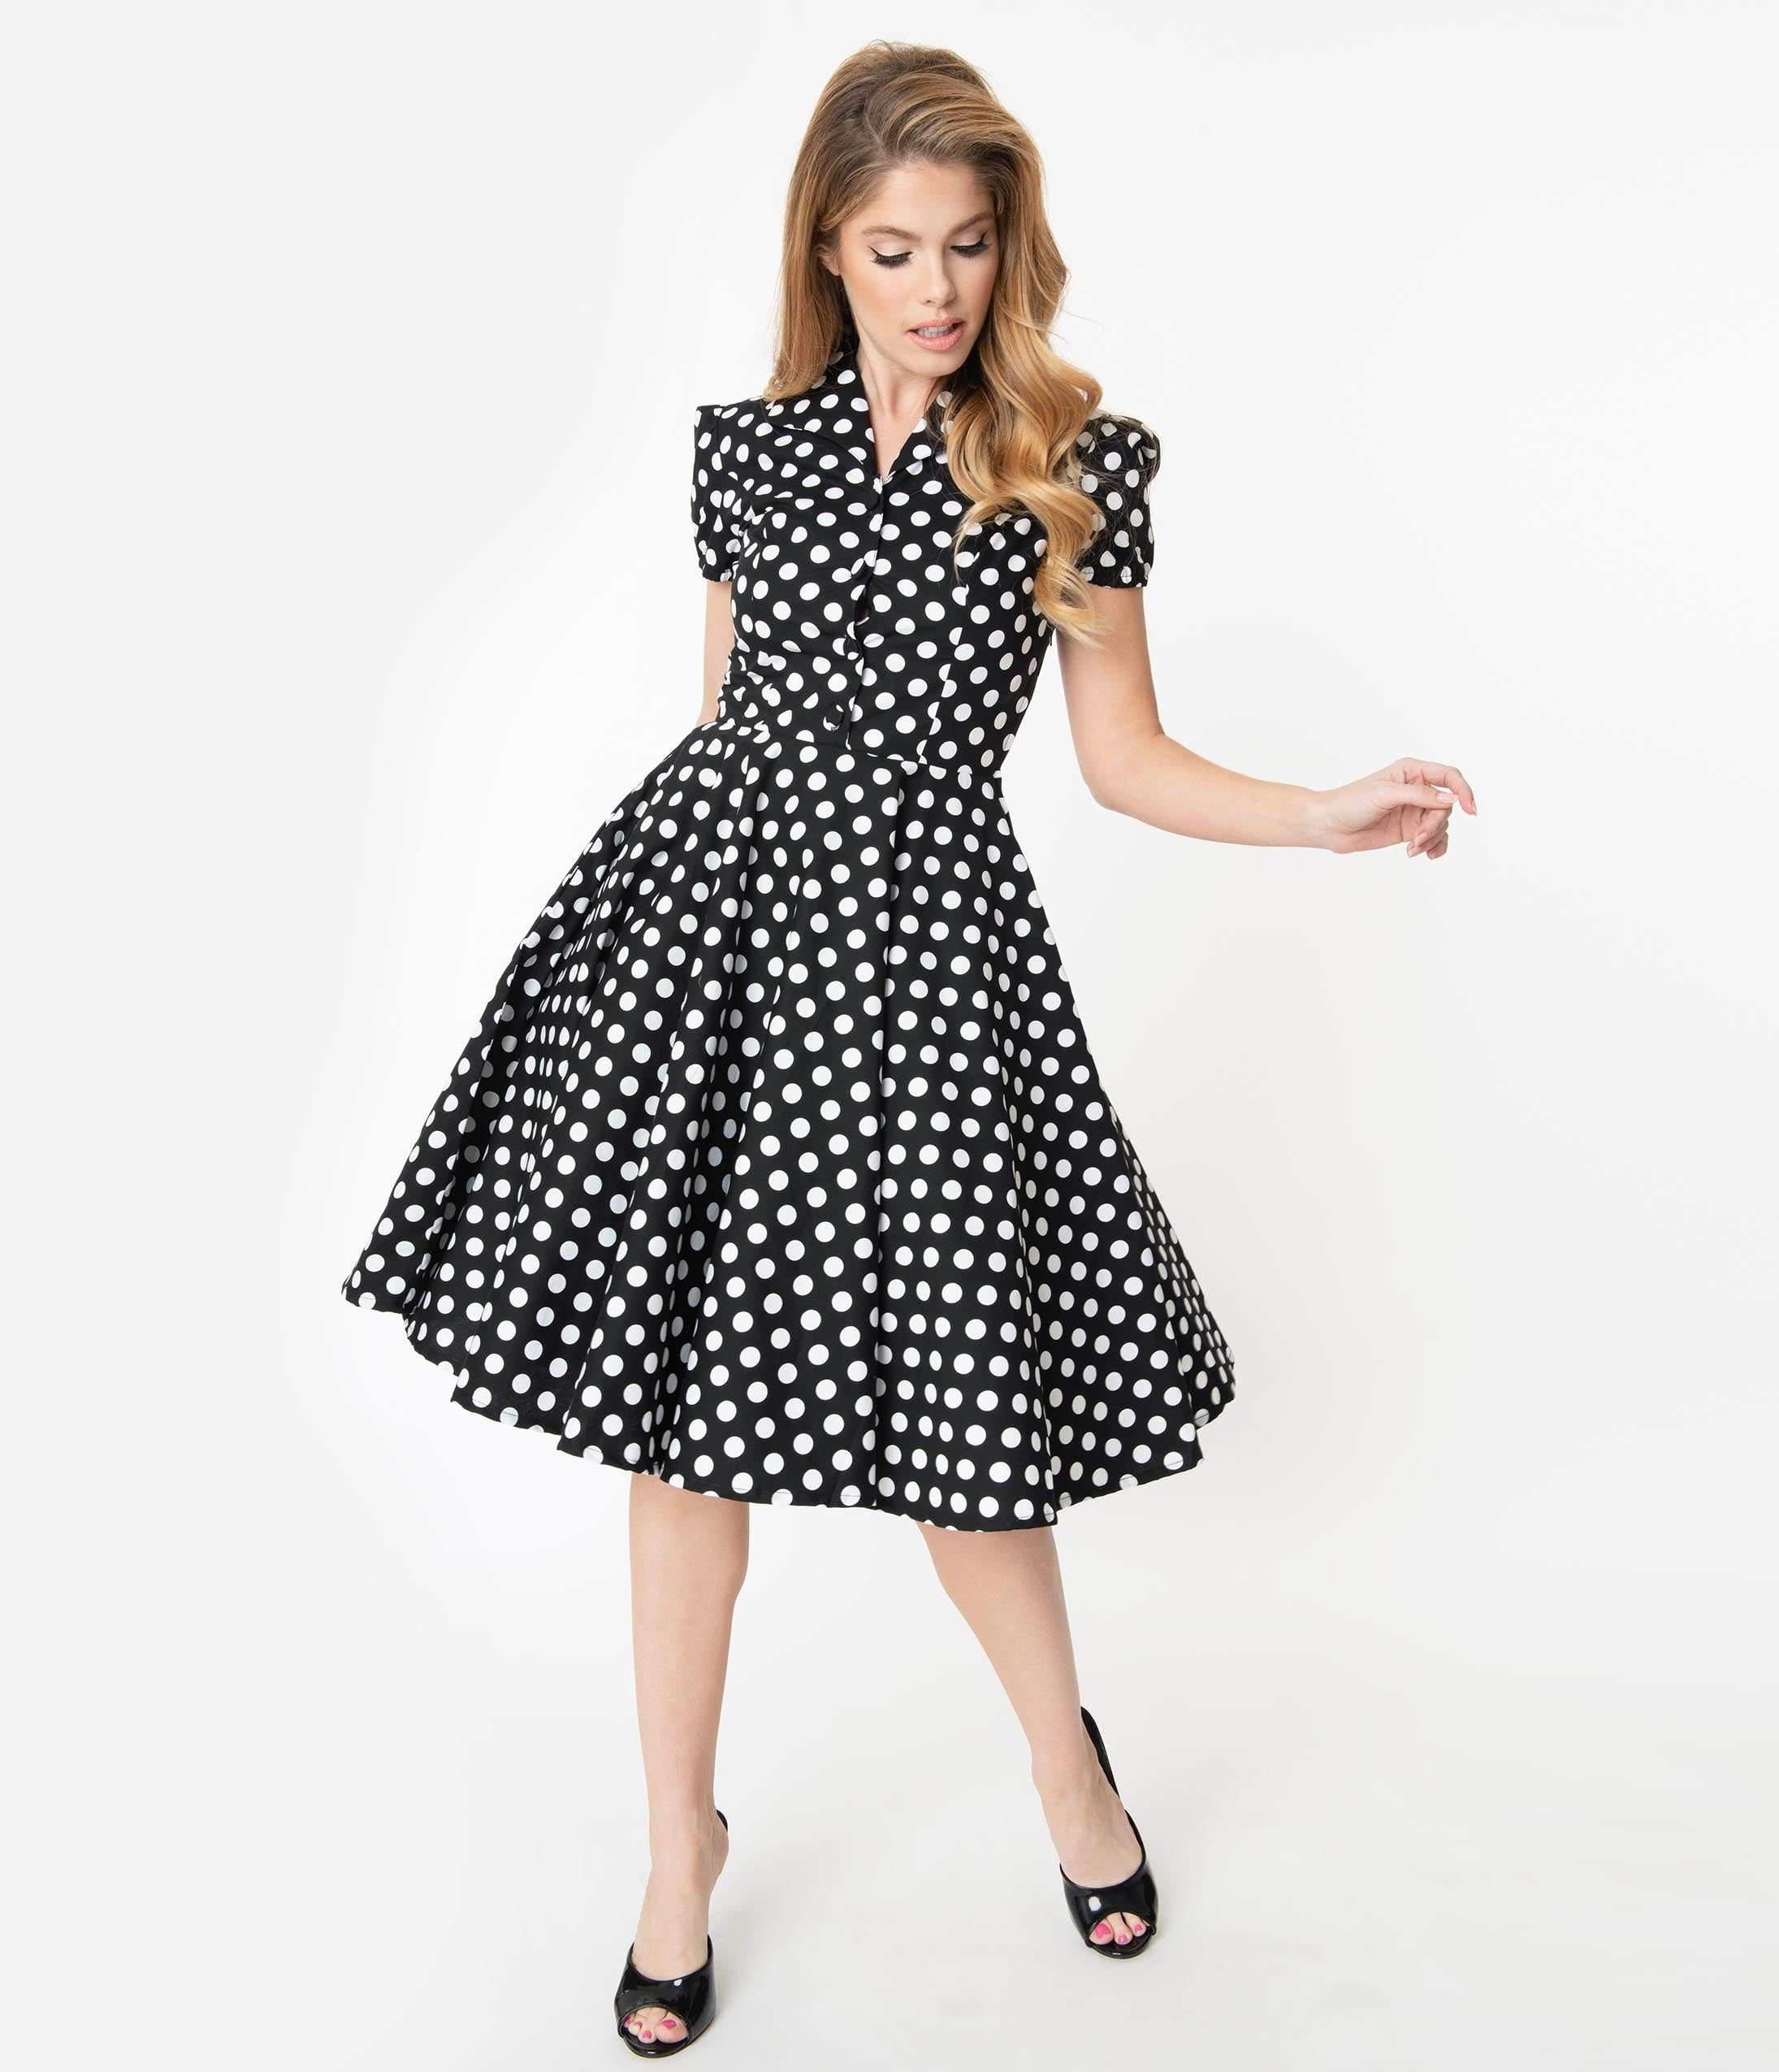 500 Vintage Style Dresses for Sale | Vintage Inspired Dresses 1950S Style Black  White Polka Dot Mona Swing Dress $78.00 AT vintagedancer.com